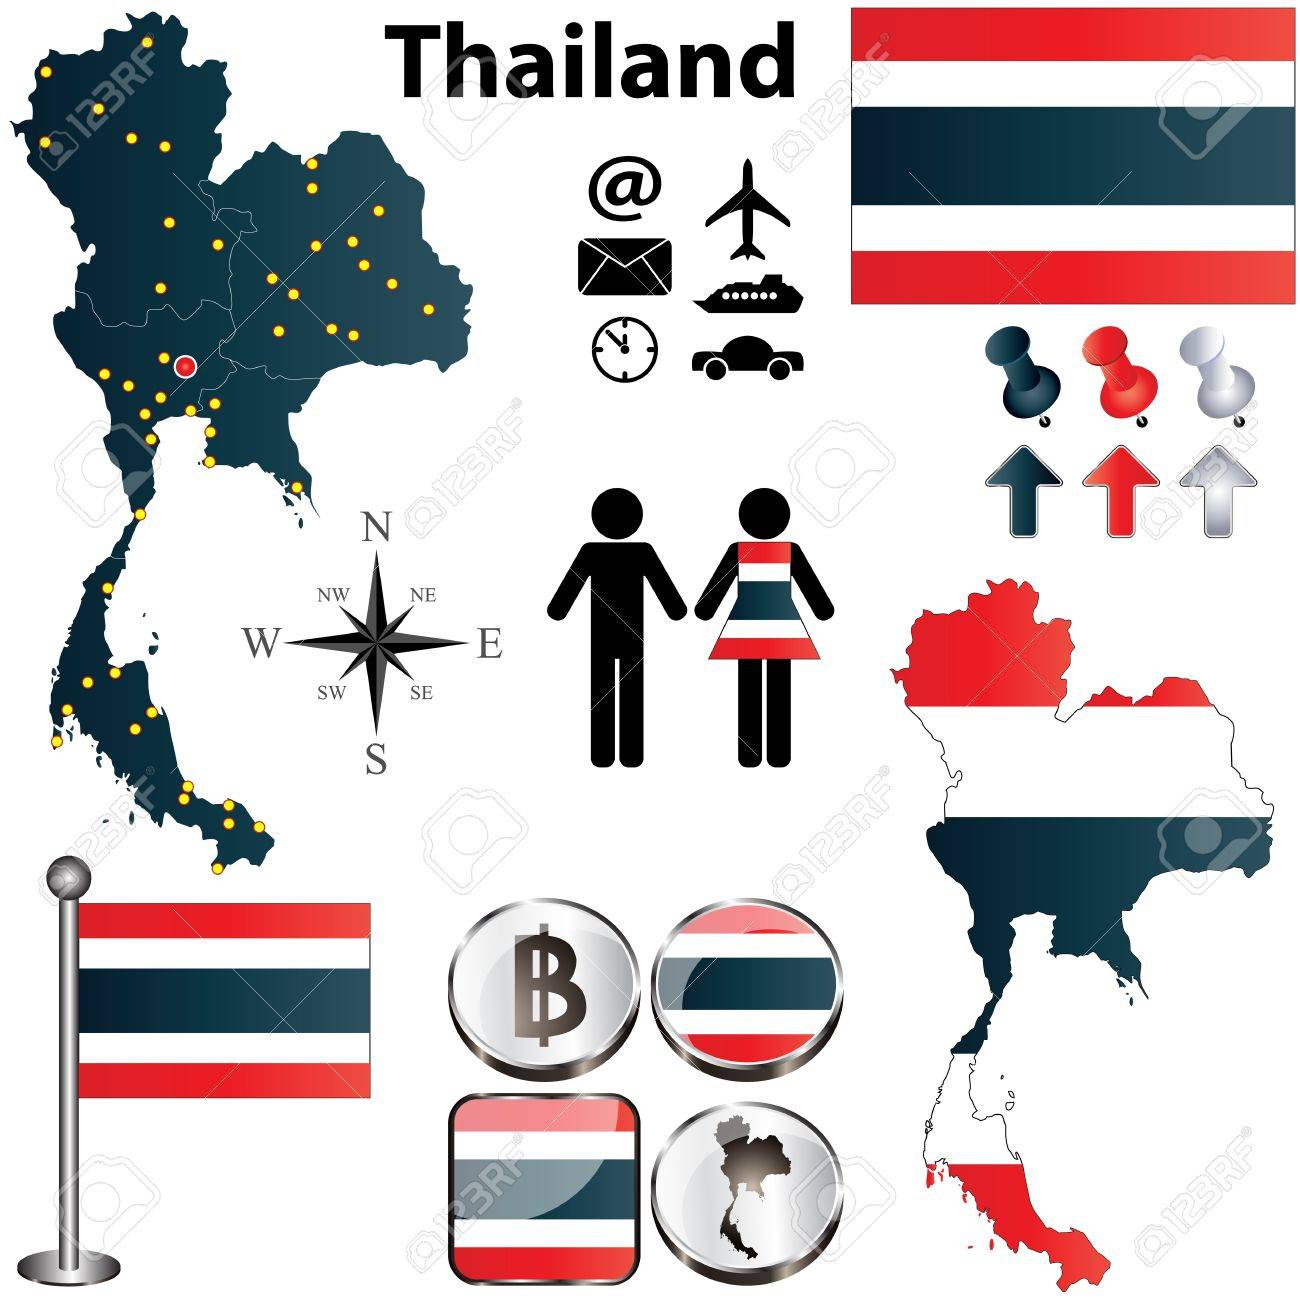 Thailand set with detailed country shape with regions borders, flags and icons Stock Vector - 18915592